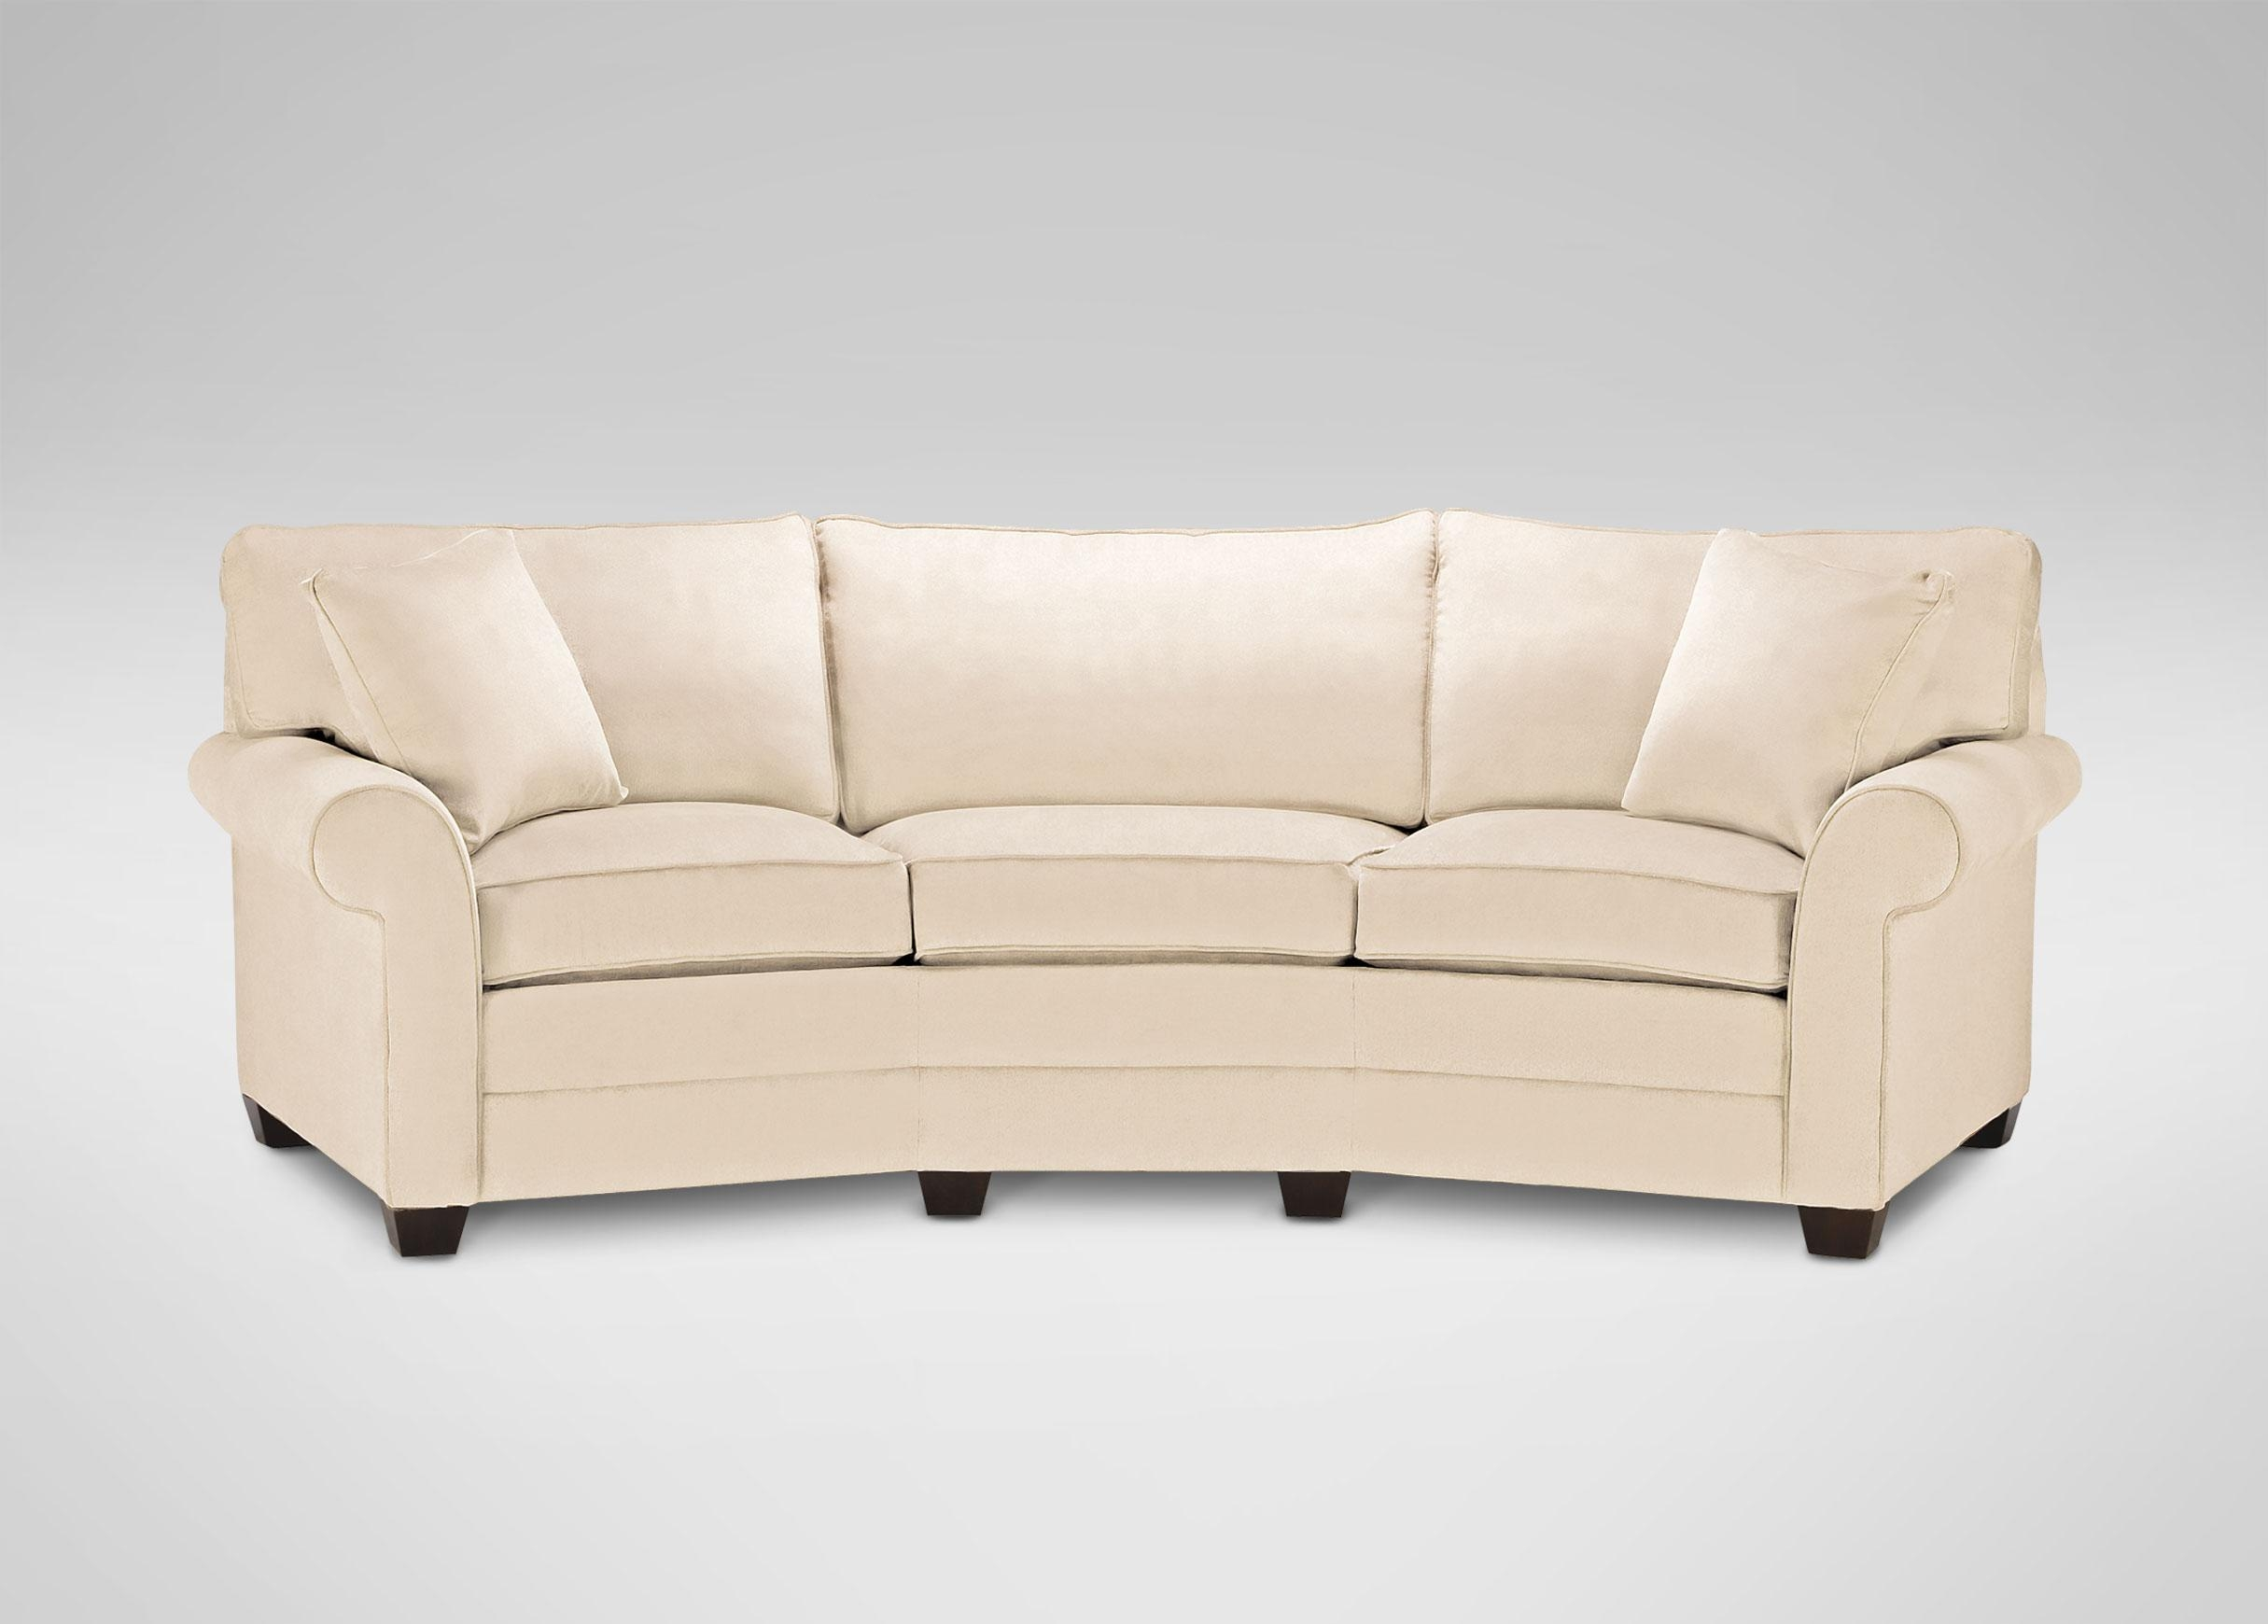 Storage Made Usa Ethan Allen Chesterfield Sofa Ethan Allen Sofa With Regard To Ethan Allen Chesterfield Sofas (Image 19 of 20)